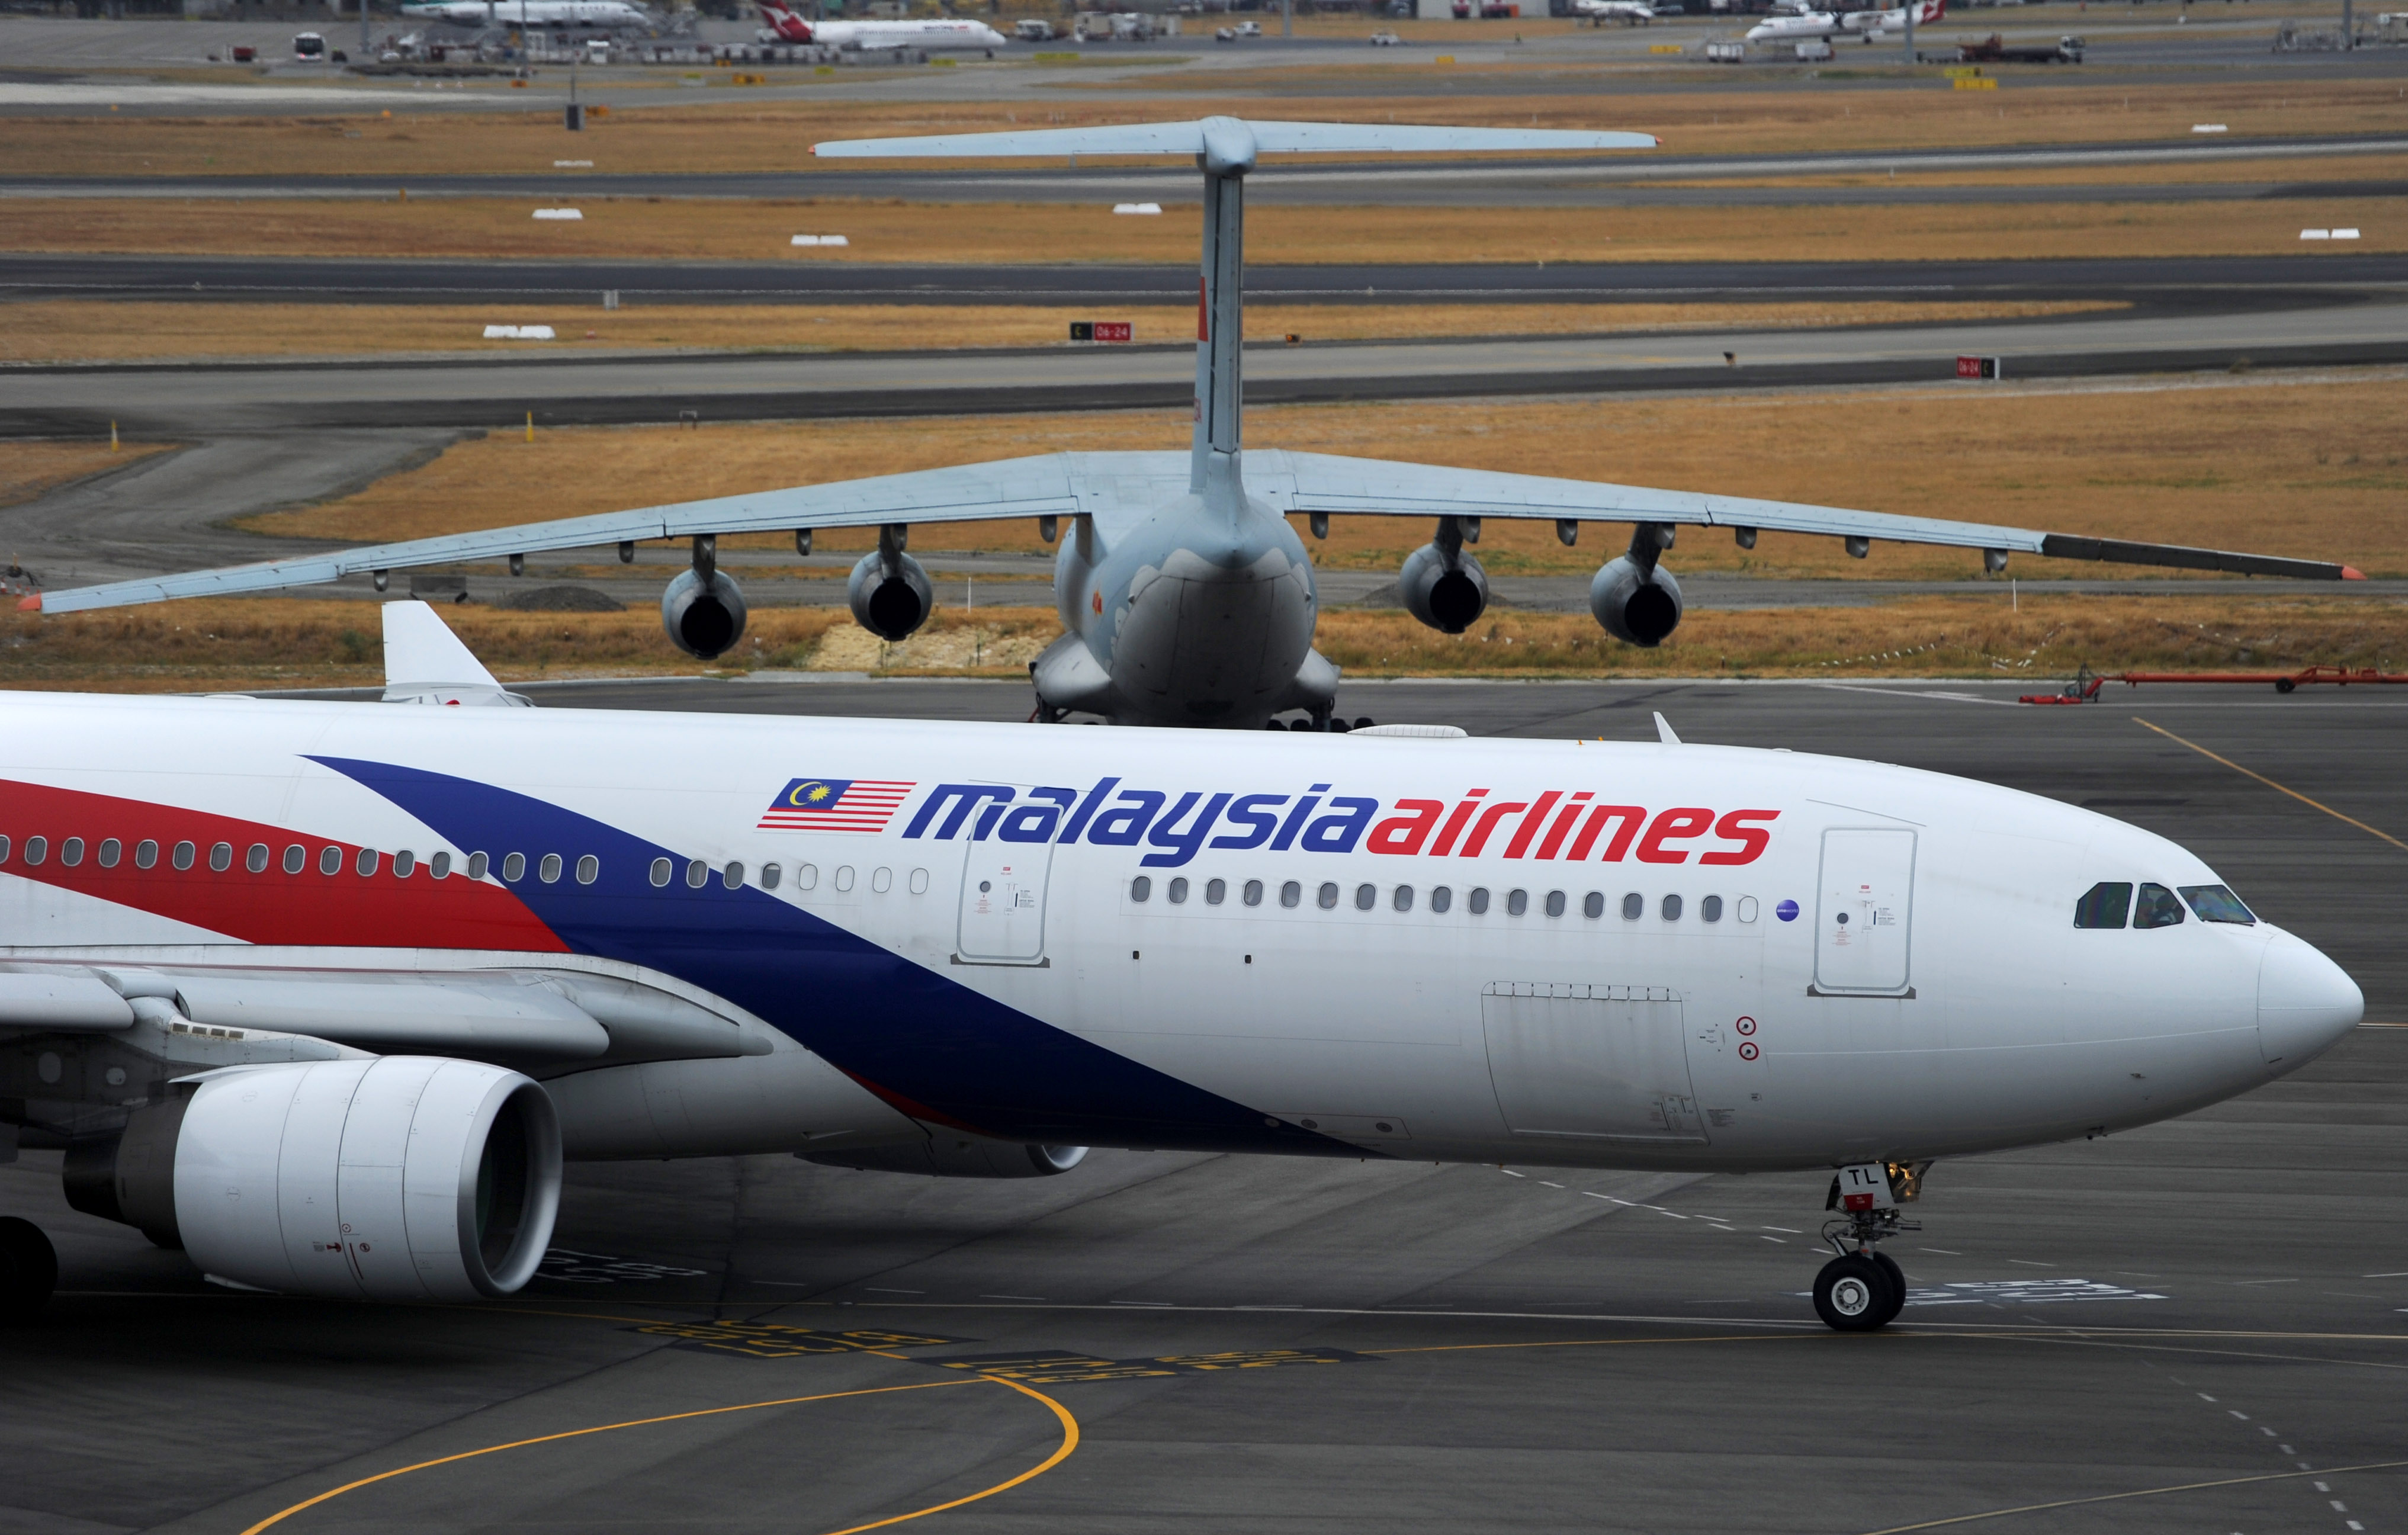 A Malaysia Airlines plane prepares to go out onto the runway and passes by a stationary Chinese Ilyushin 76 aircraft (top) at Perth International Airport on March 25, 2014 in Perth, Australia.